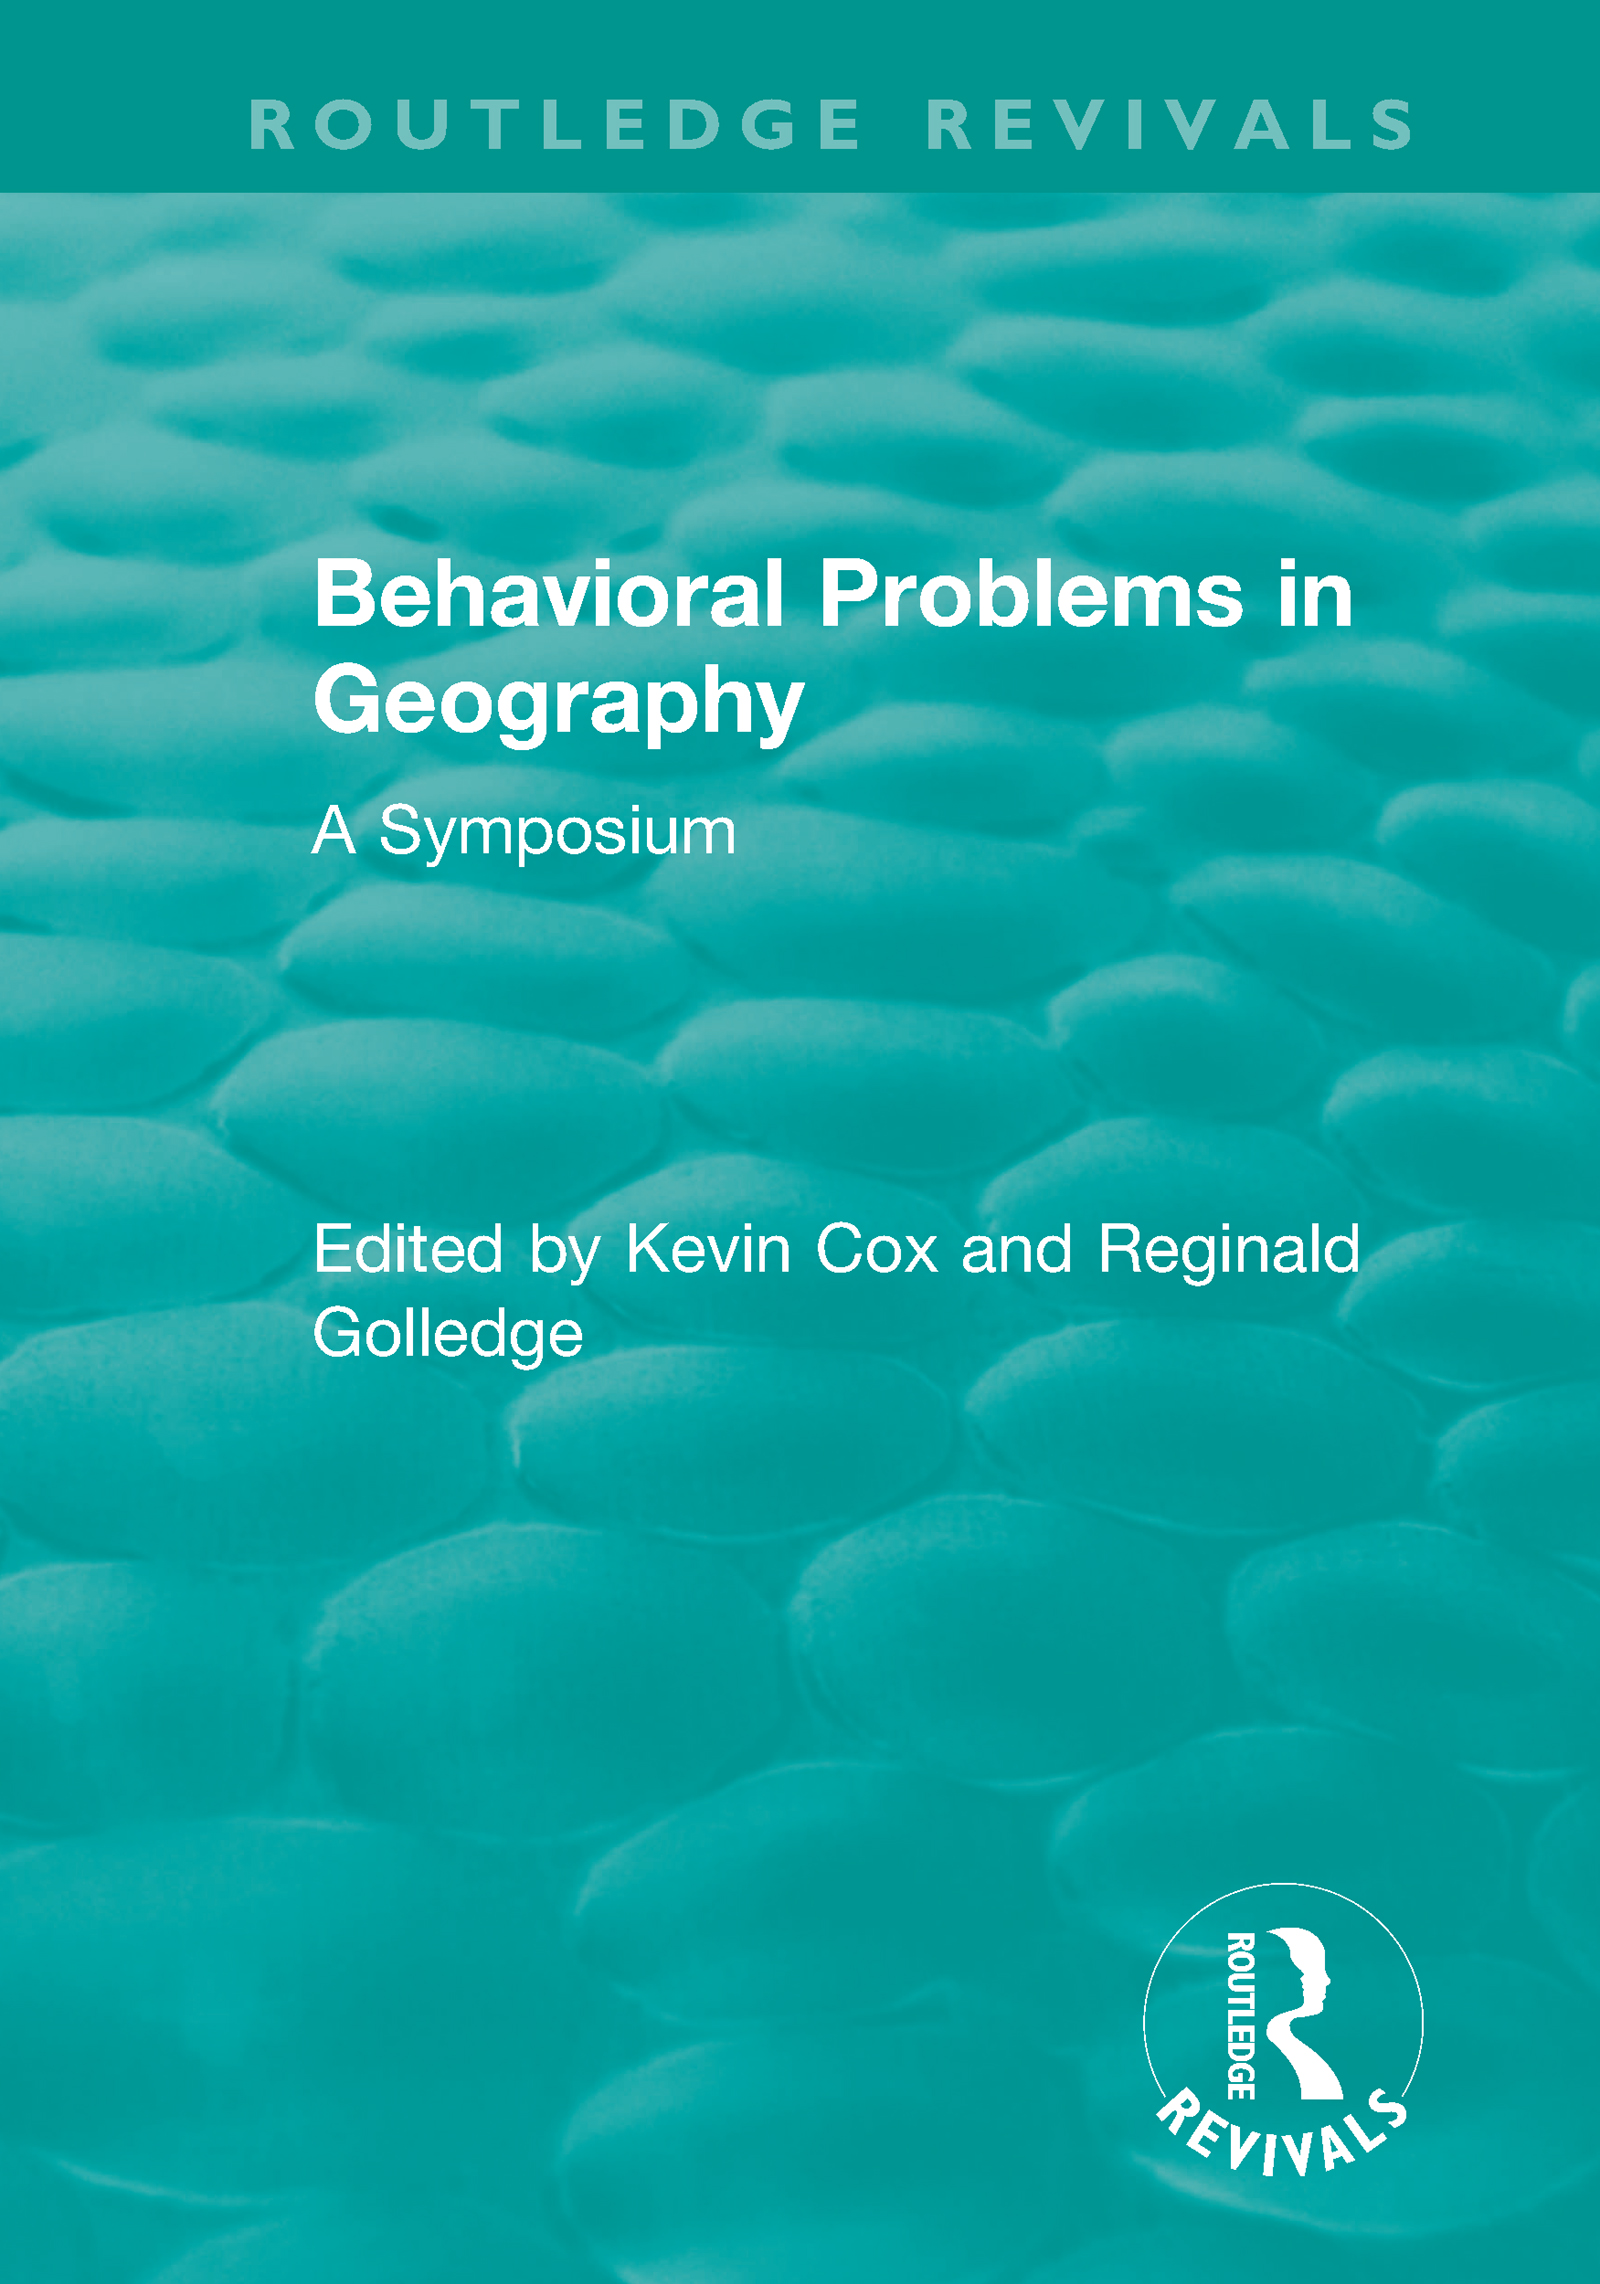 Routledge Revivals: Behavioral Problems in Geography (1969): A Symposium book cover